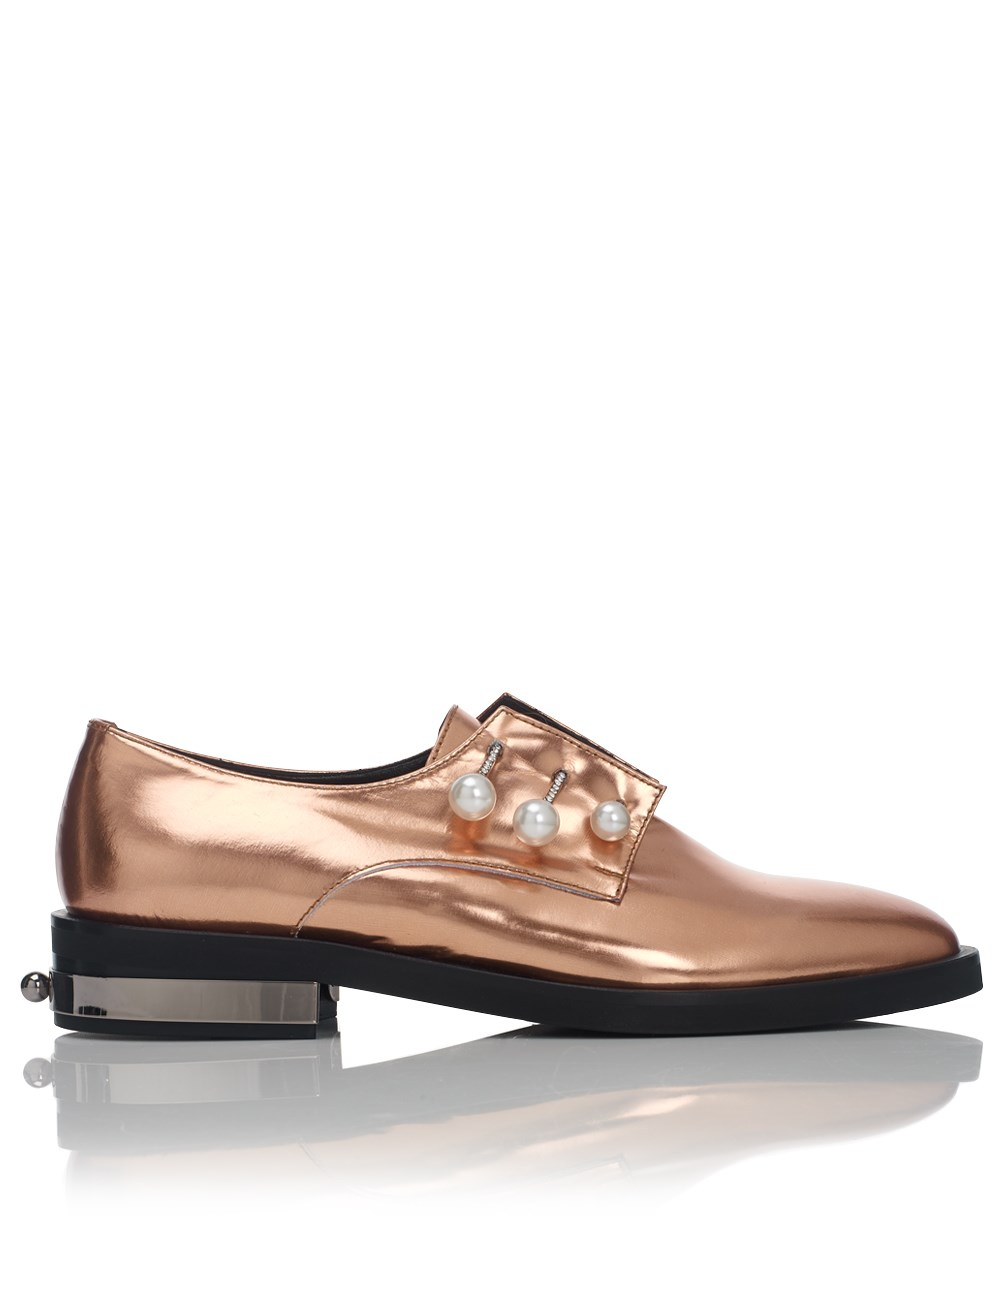 Coliac Copper Leather Derby Fernanda Shoes in Metallic